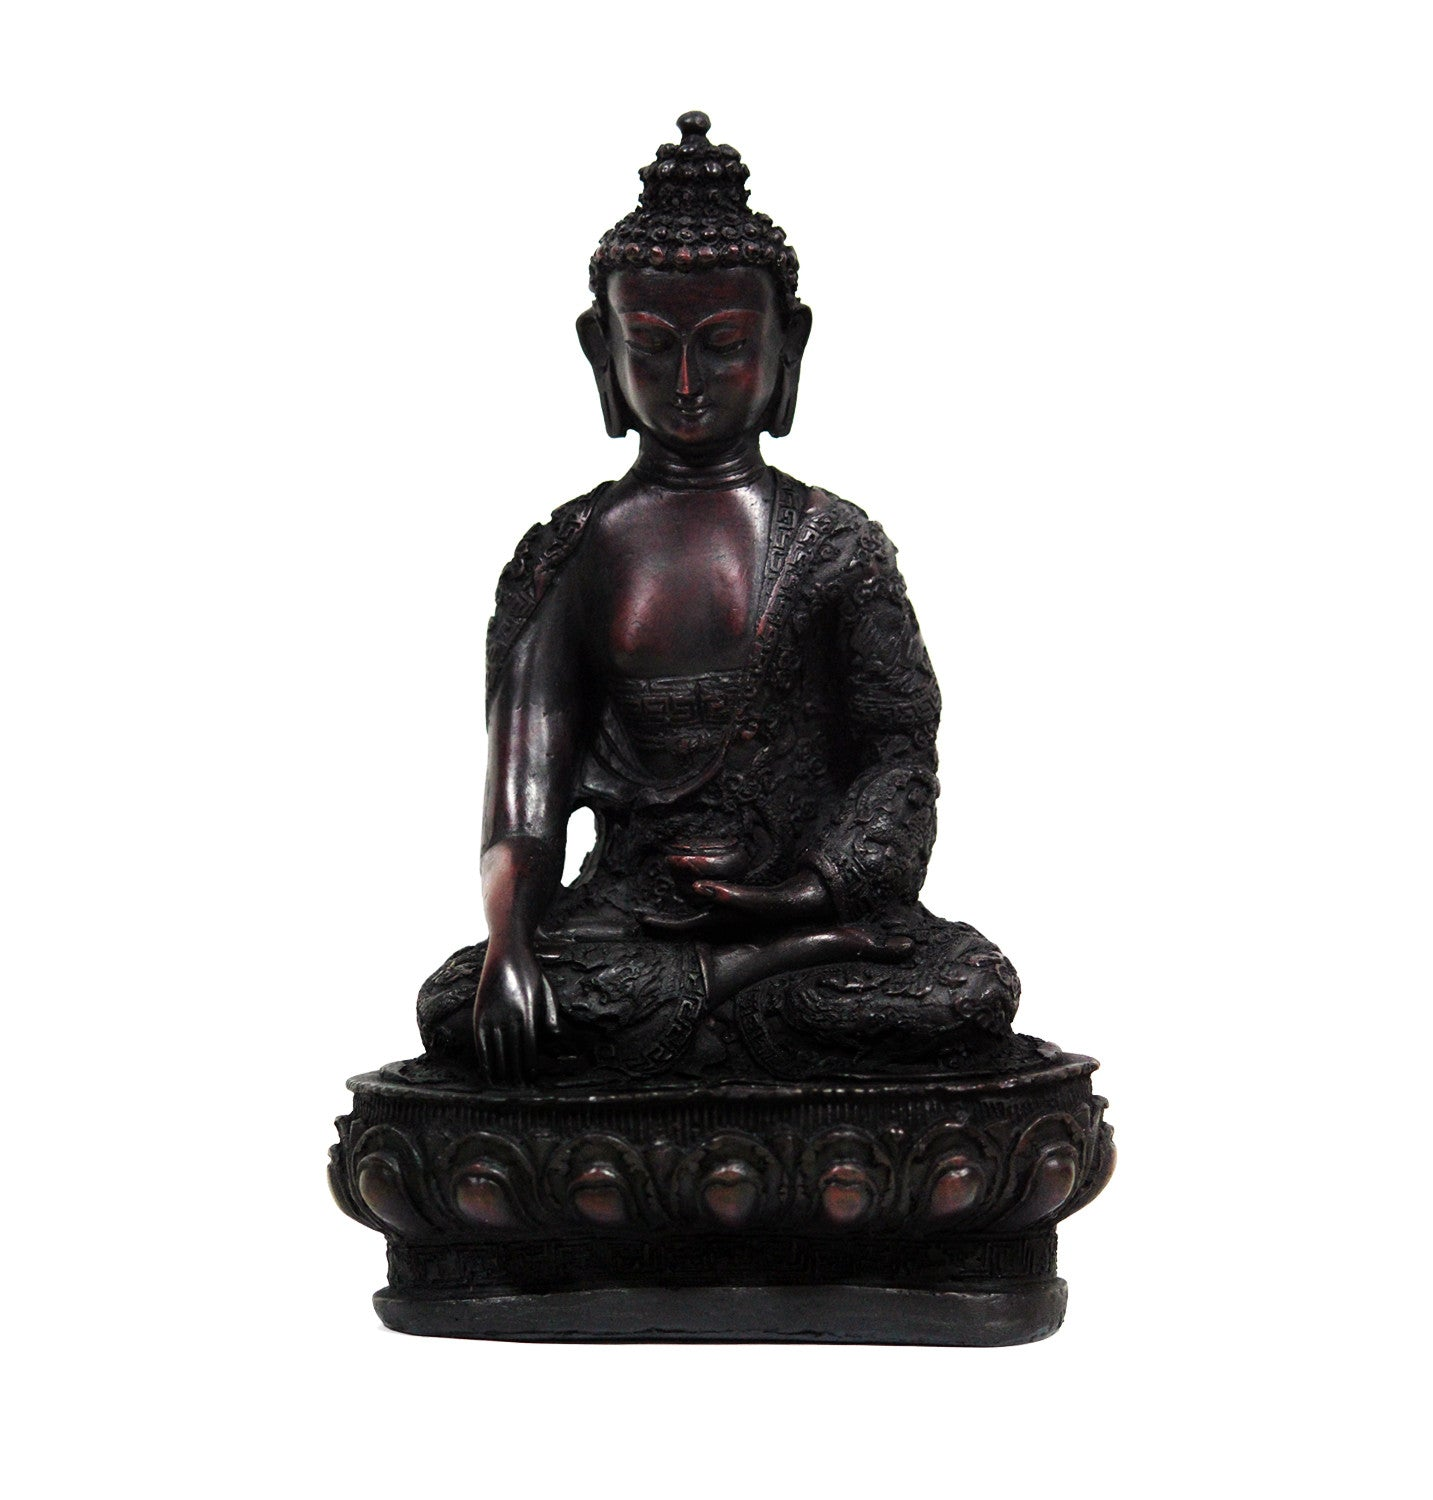 statue dust rat statues decor home index ramraj buddha marble